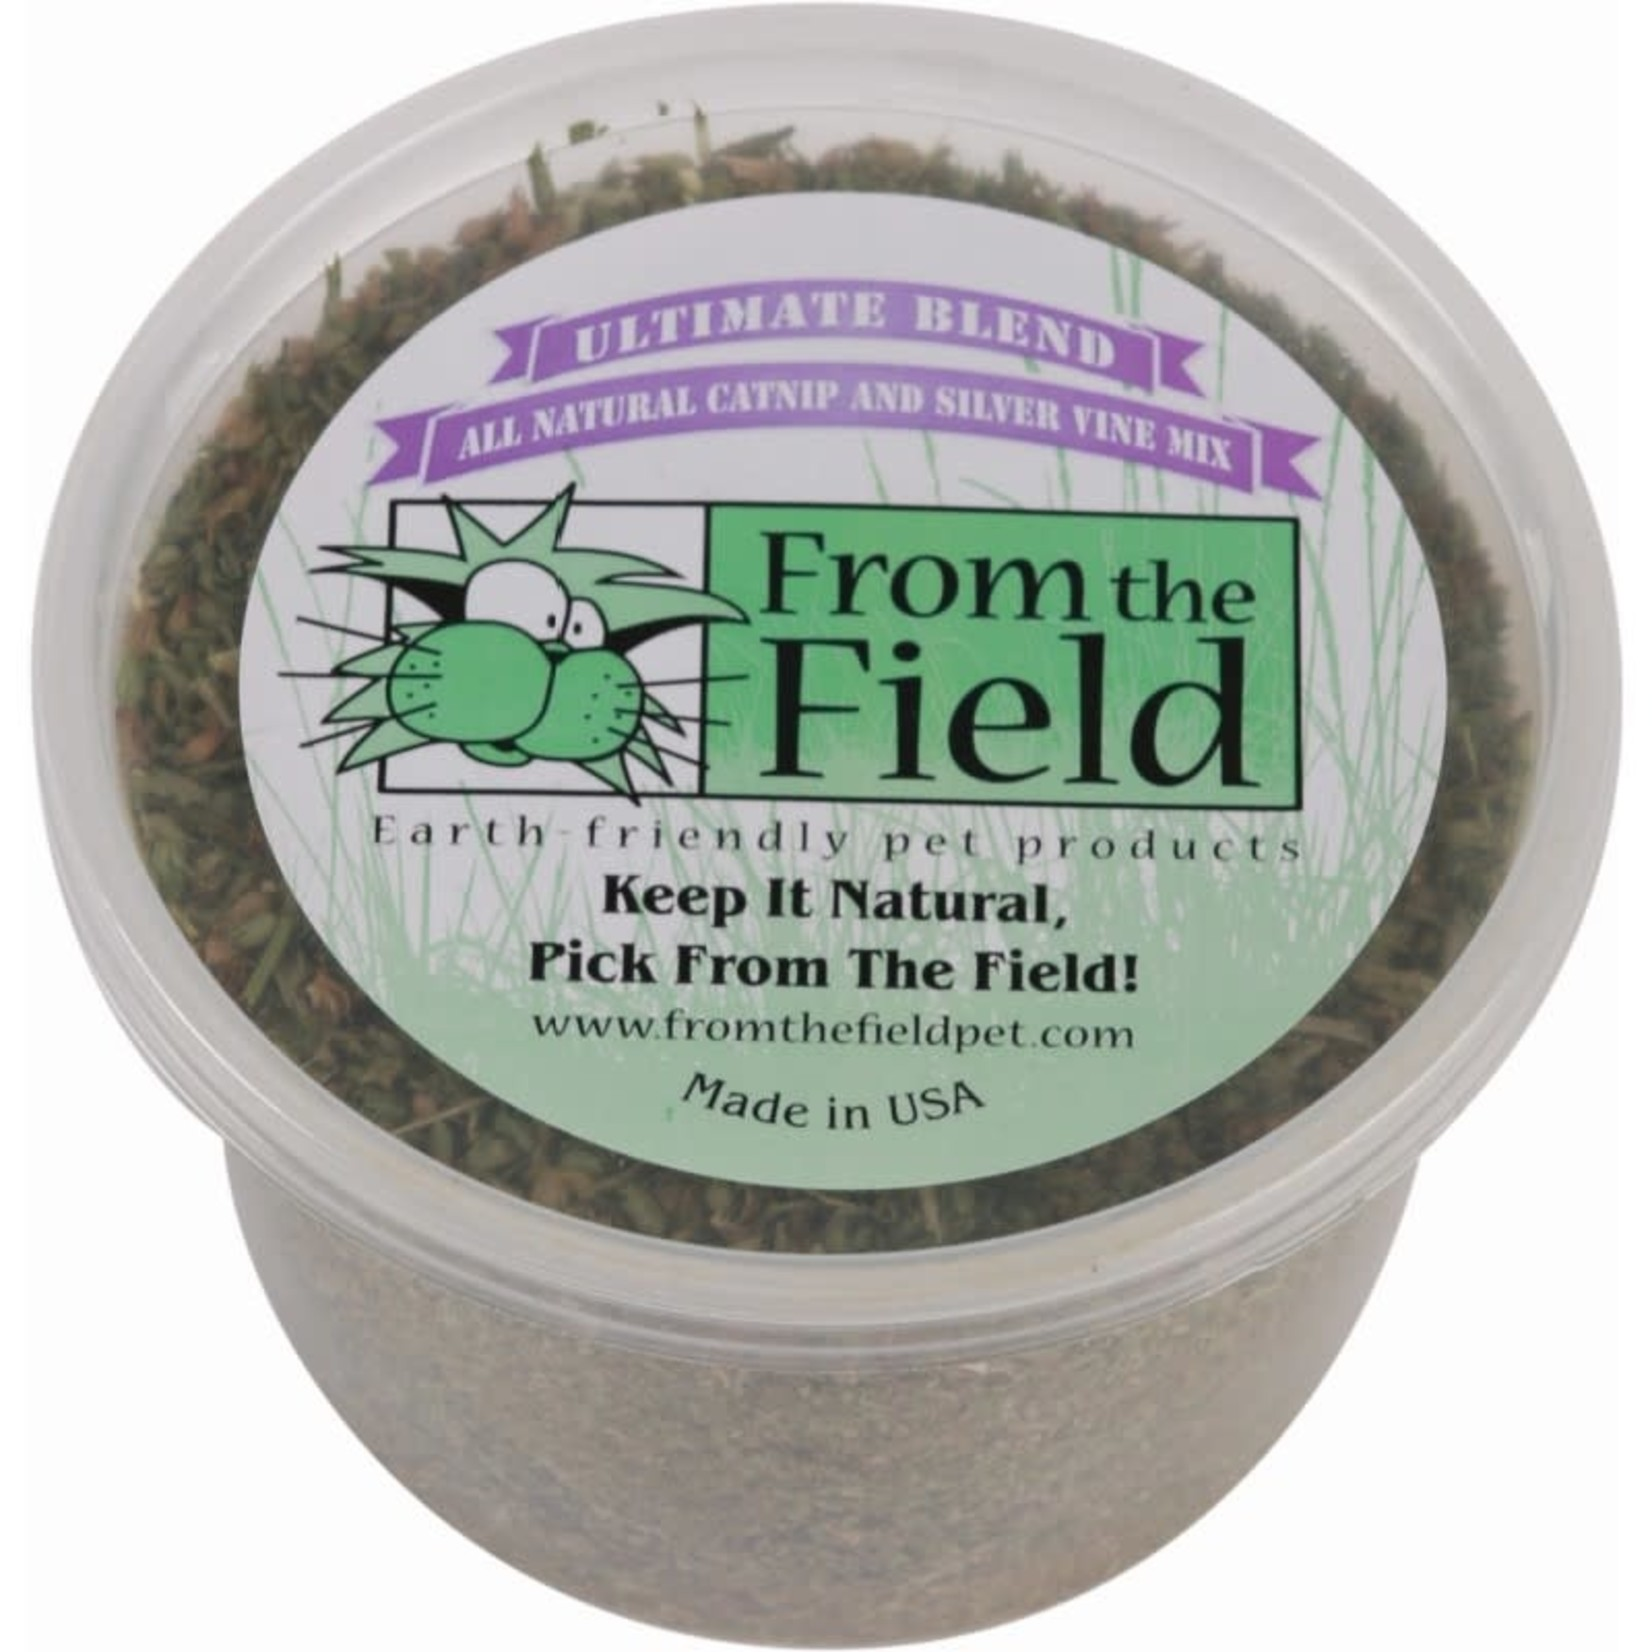 From The Field From The Field Ultimate Blend Catnip Silver Vine Mix 2 OZ Tub